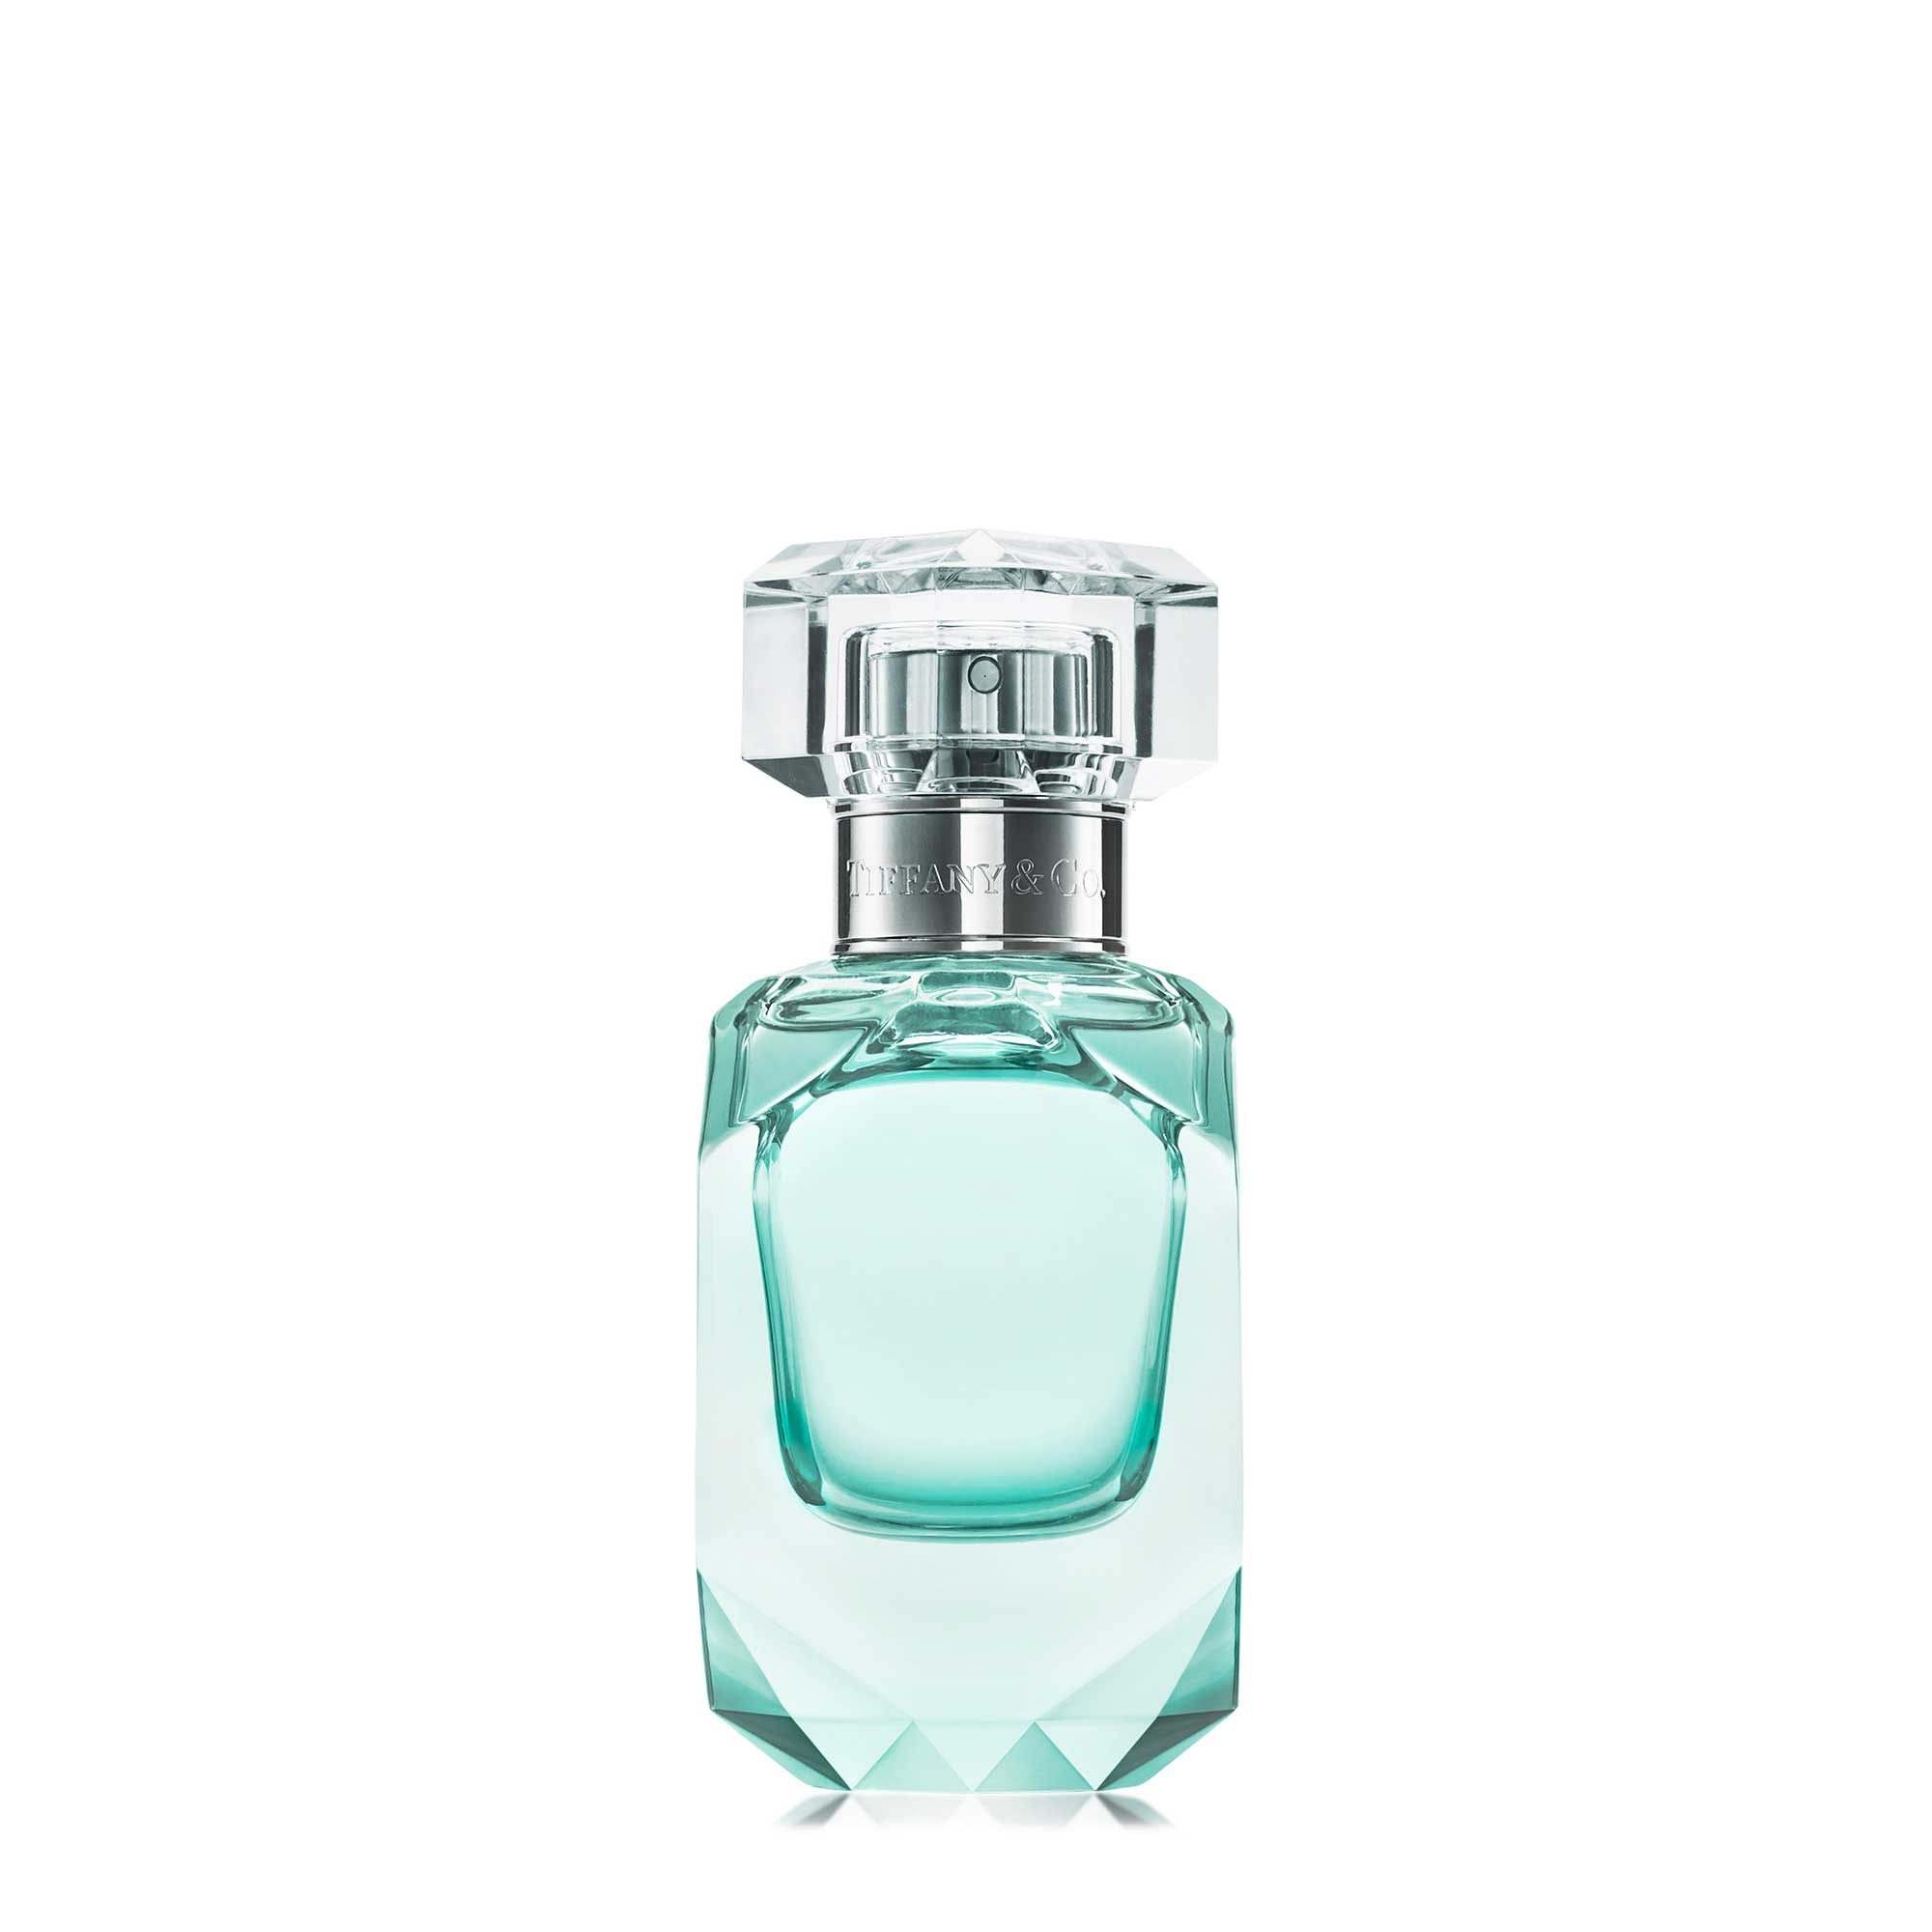 Tiffany Eau de Parfum Intense  - Tiffany & Co.